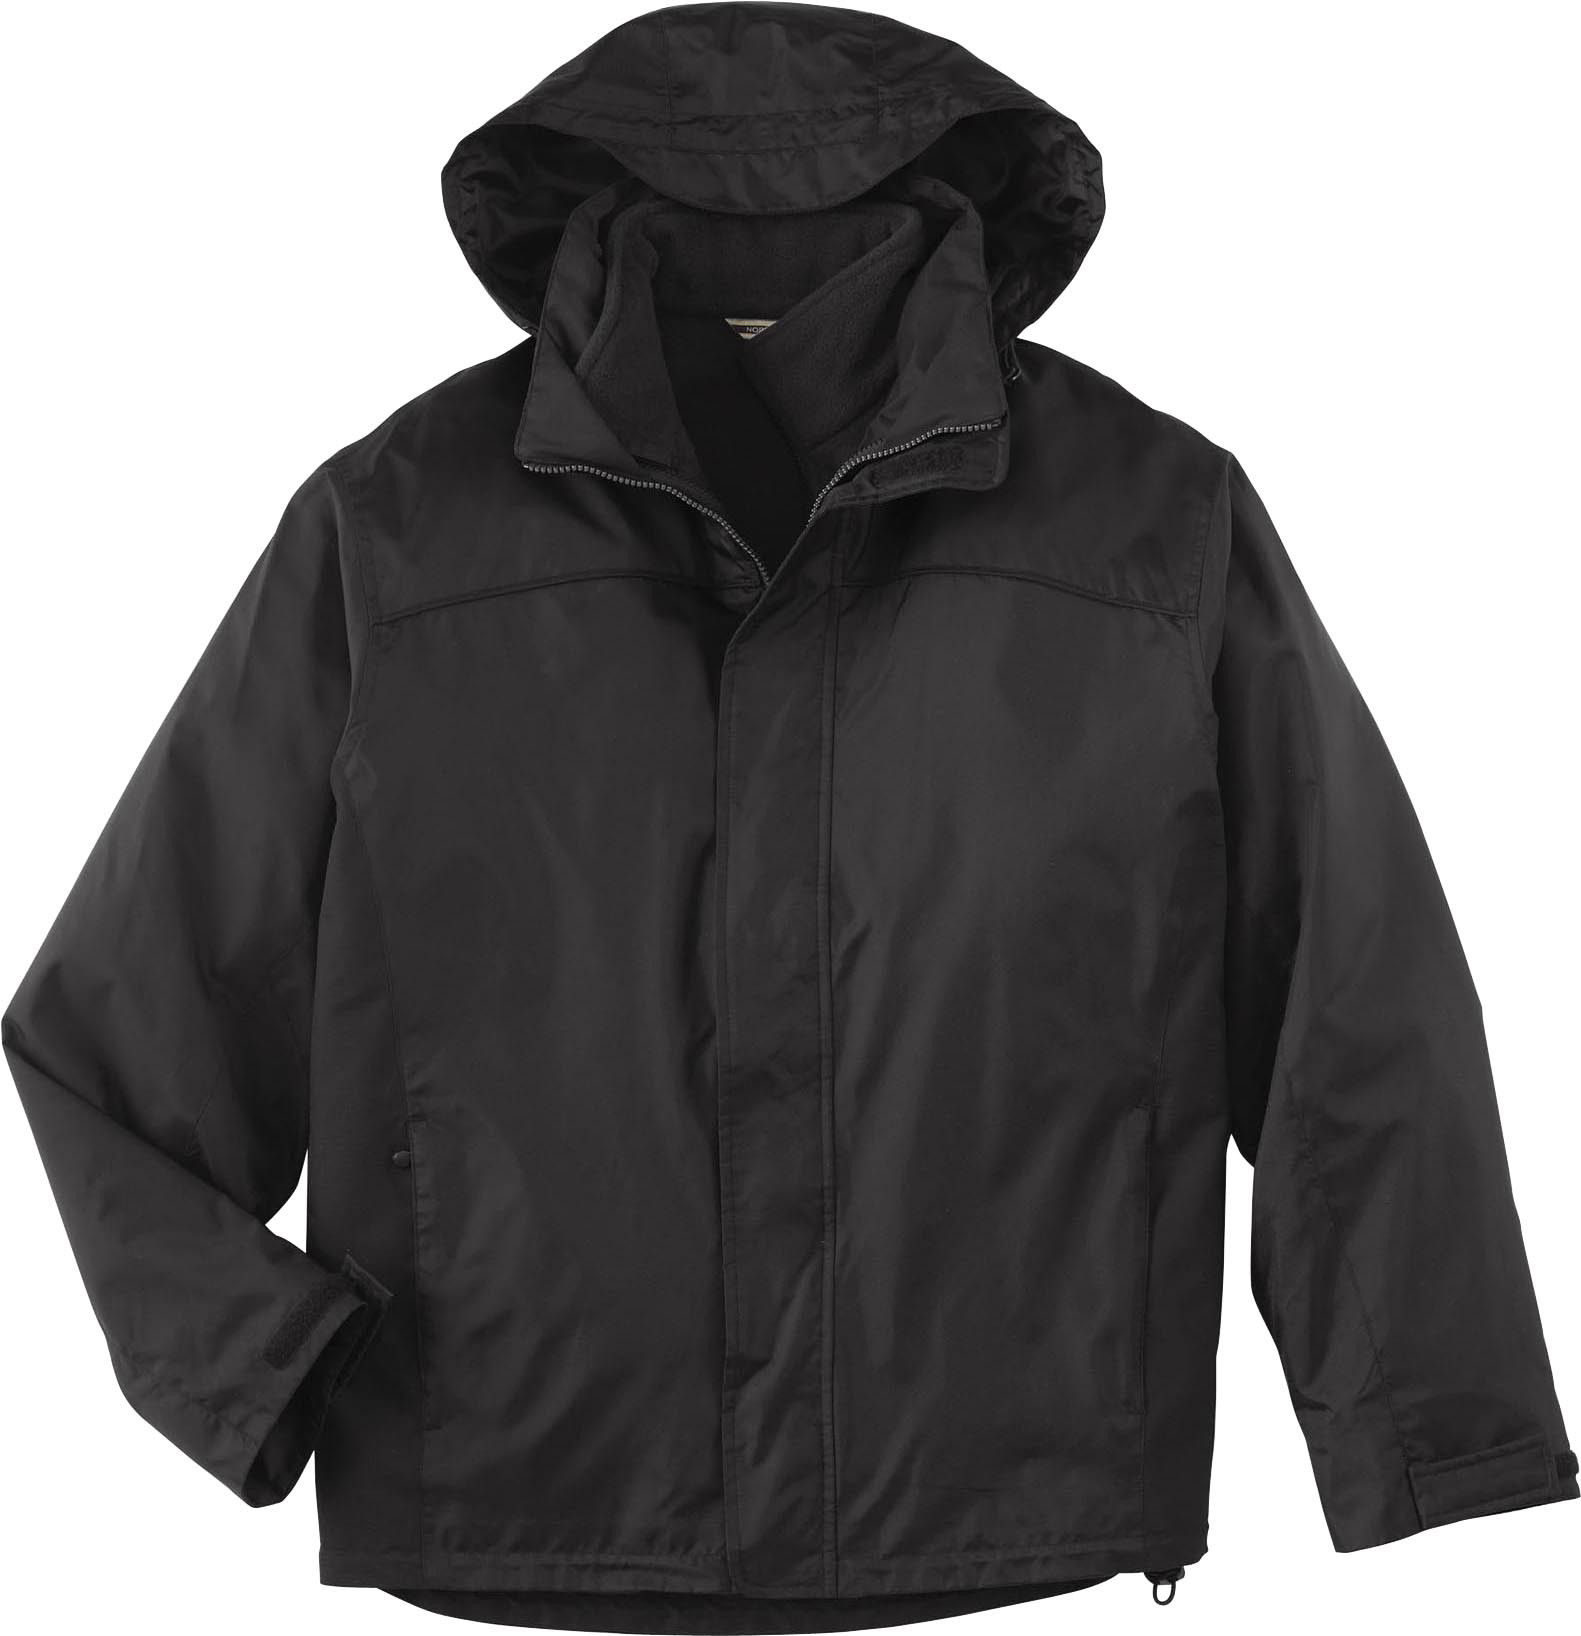 Ash City UTK 2 Warm.Logik 88130 - Men's 3-In-1 Jacket